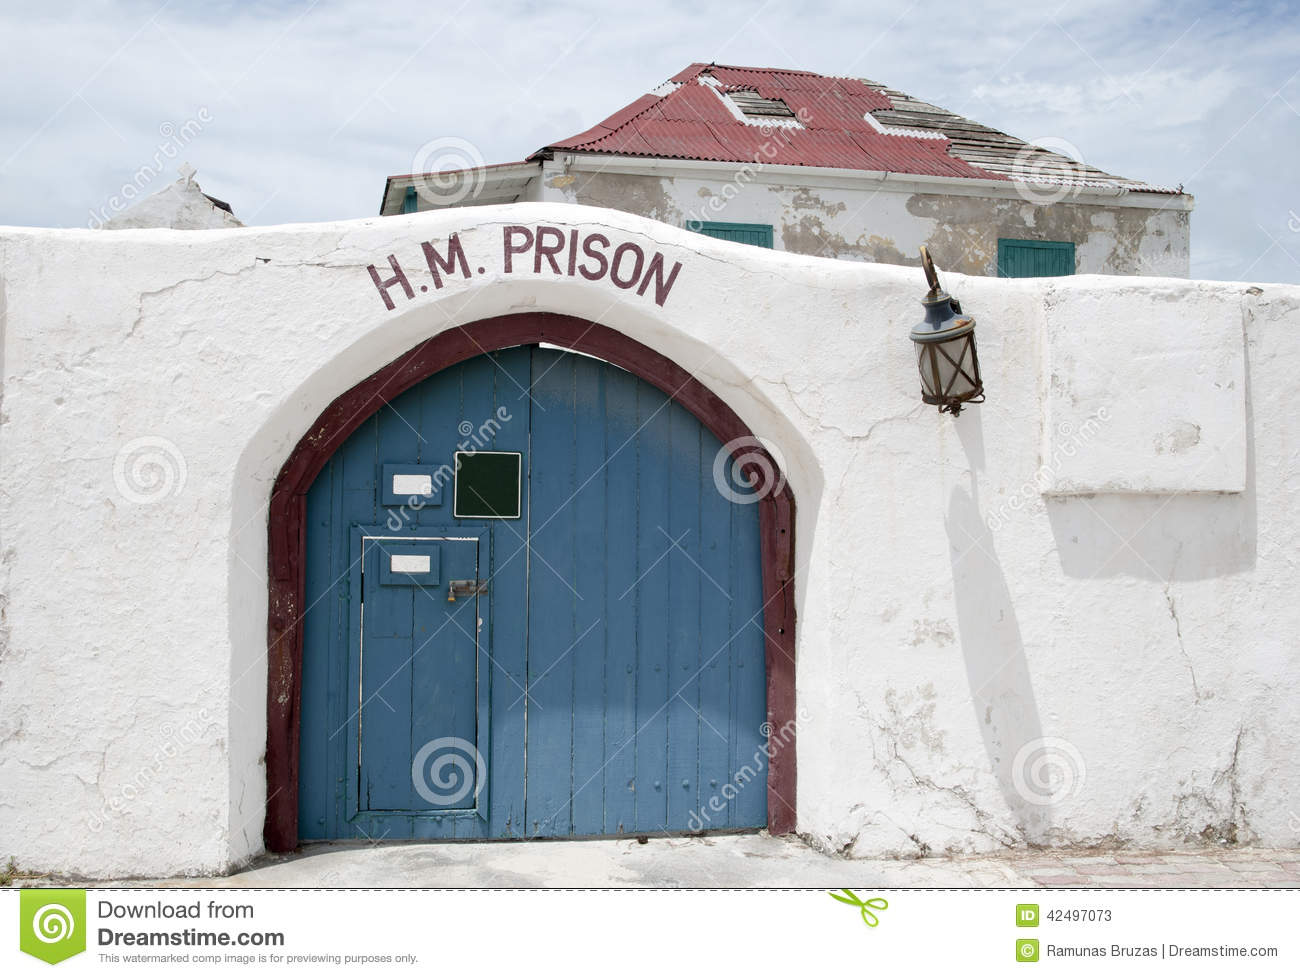 prison management styles The issue of managing the elderly in prisons has emerged as one of the most significant and unplanned-forcrisesincorrections who were incarcerated prior to age 50 but who have aged in prison because oftheir long sentences it hasbeen documented that style choices like smoking ― poor sight and hearing.